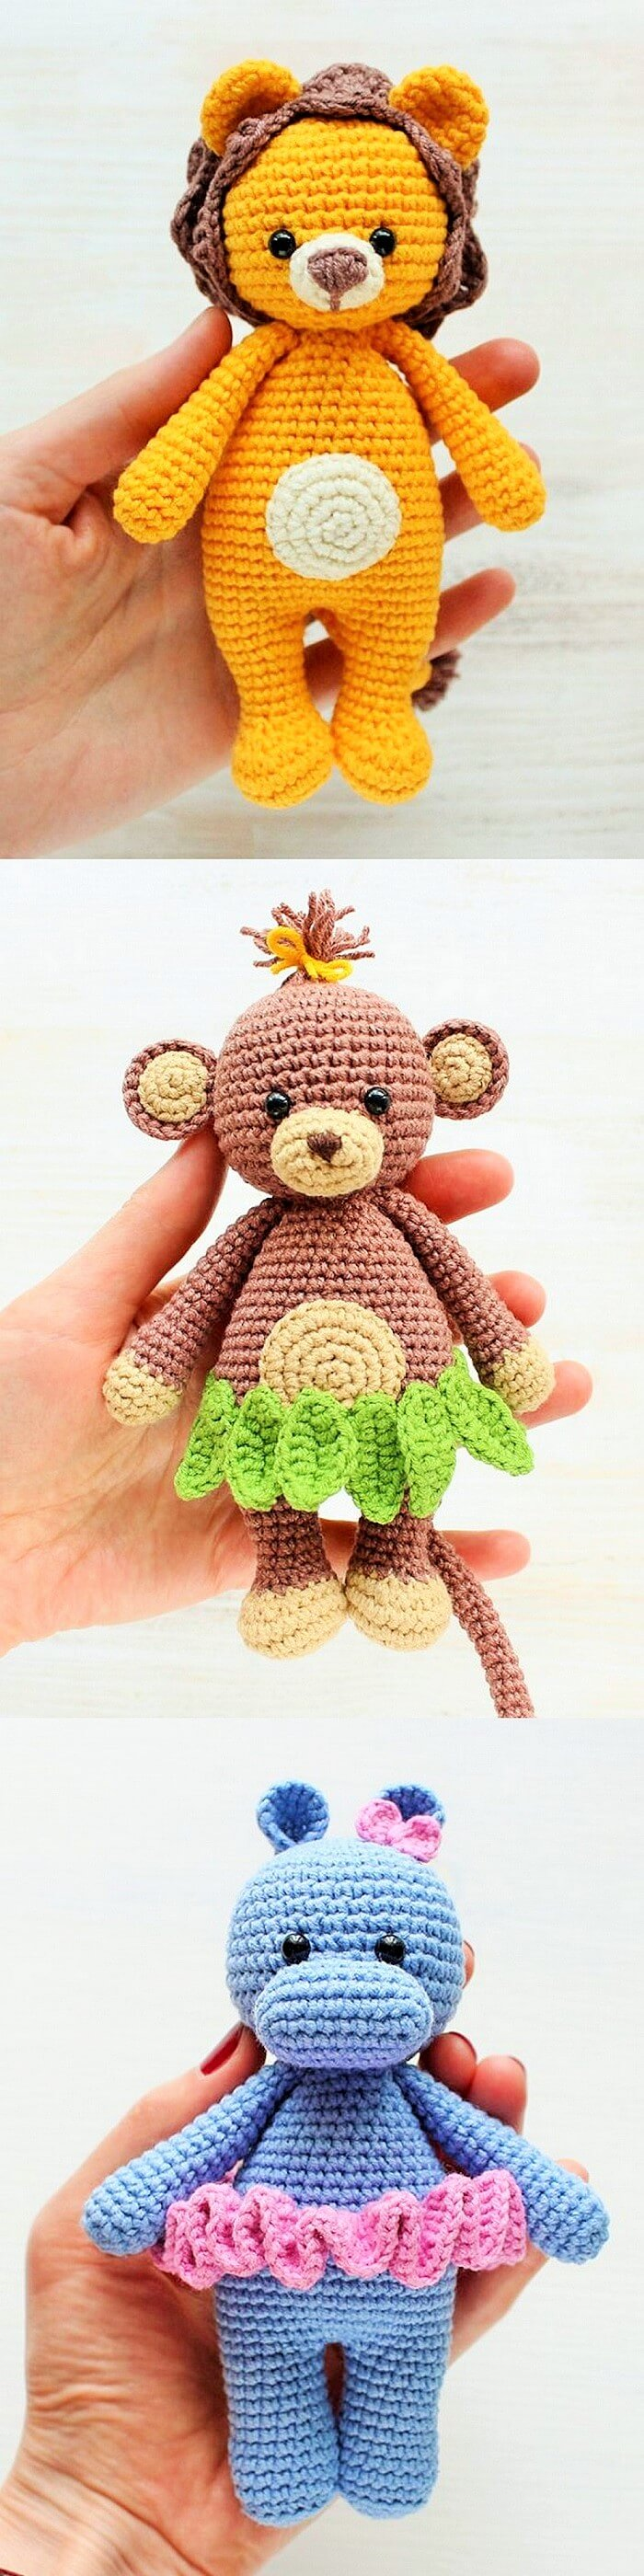 Crochet toys Ideas-3 (2)